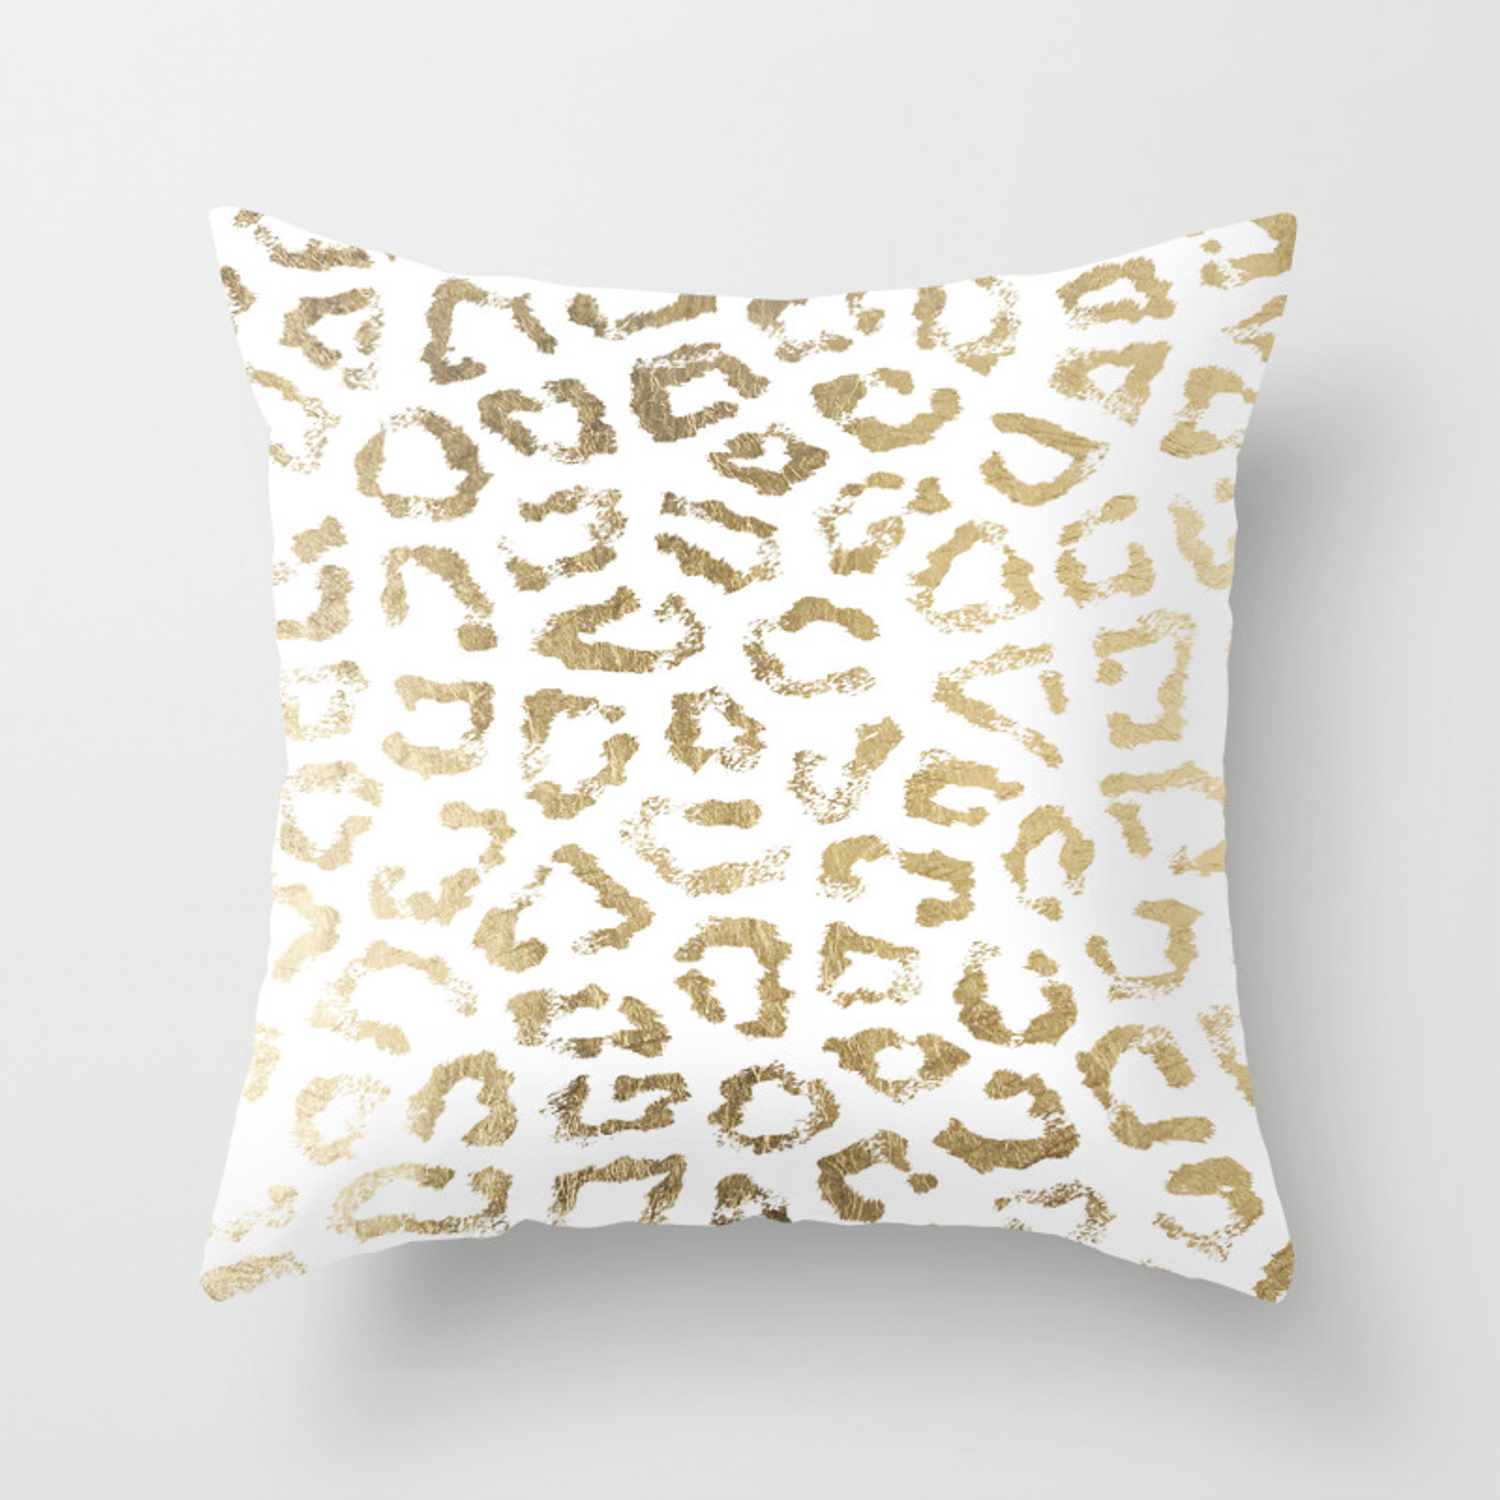 Modern White Chic Faux Gold Foil Leopard Print Throw Pillow By Pink Water Society6